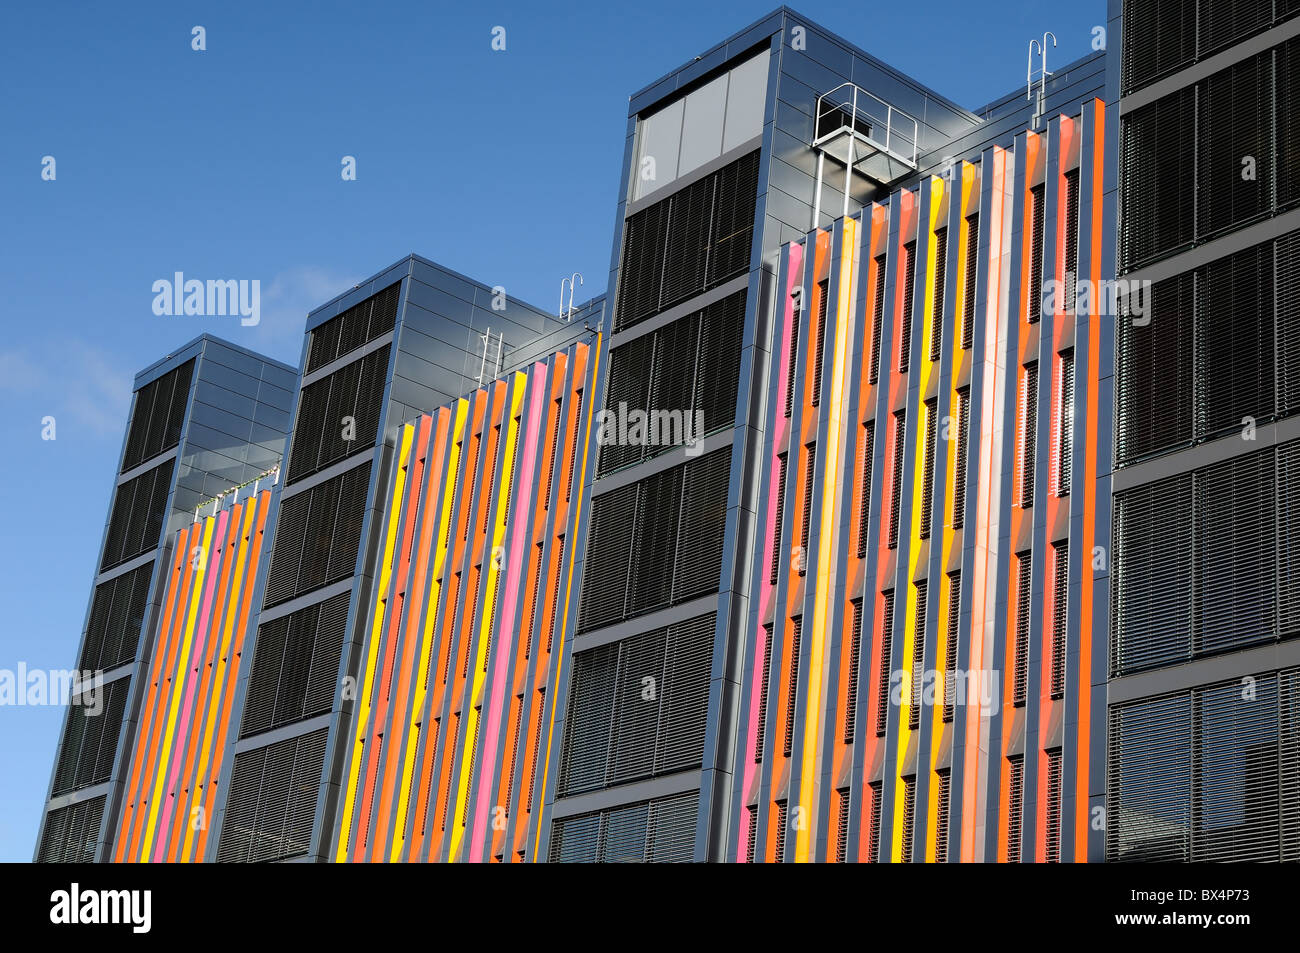 Detail of the modern architecture - Stock Image